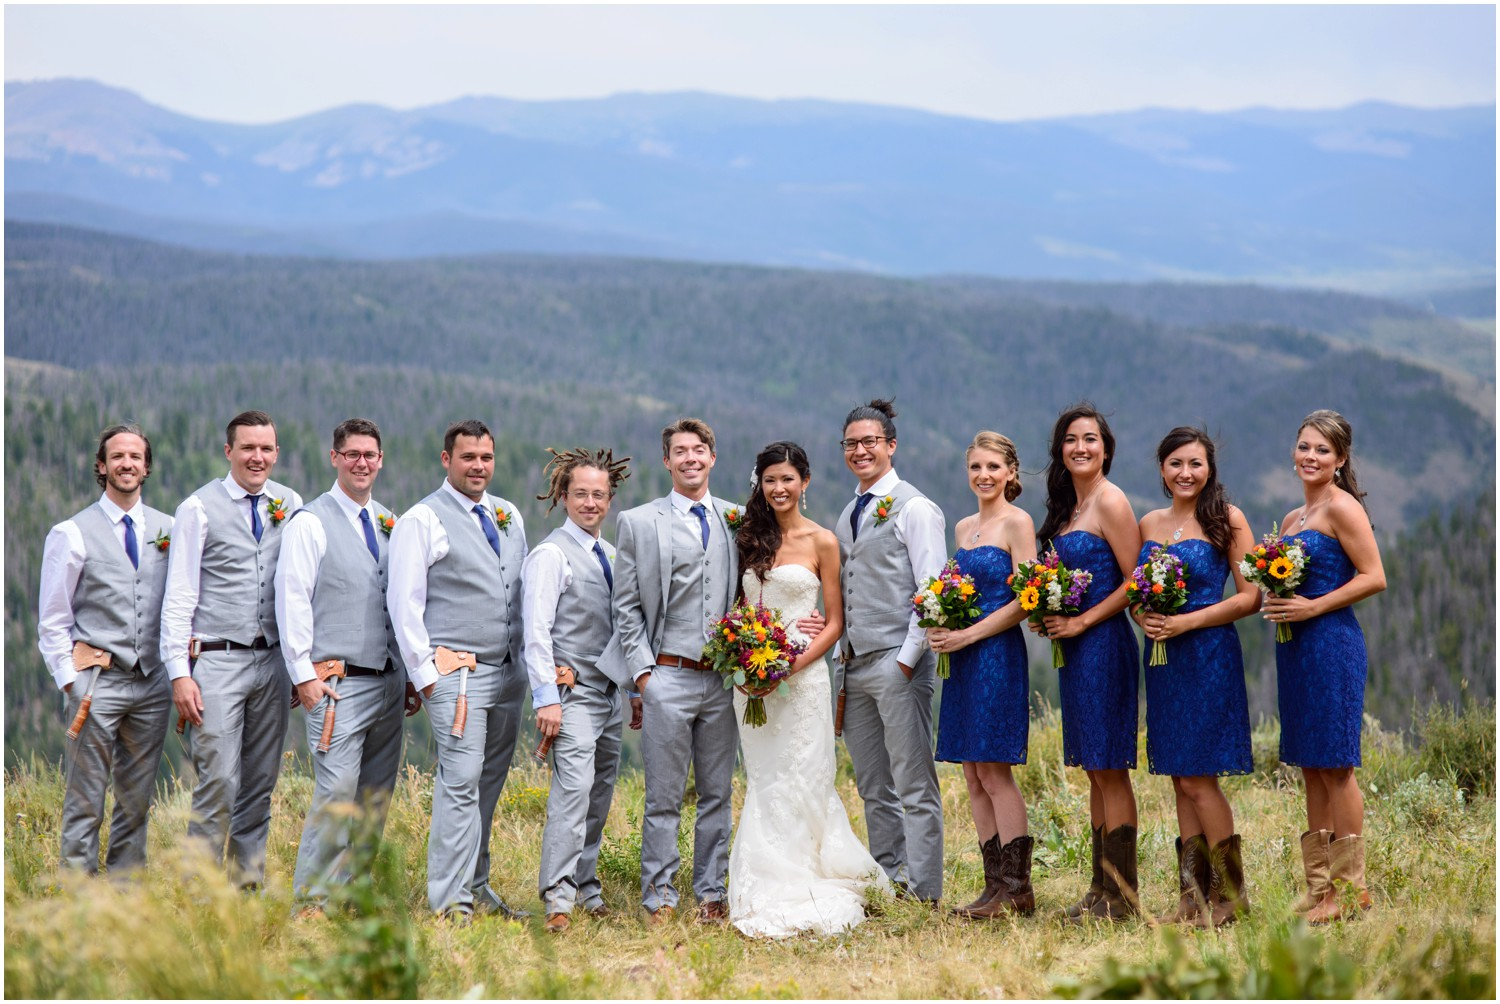 287-Granby-ranch-summer-wedding-photography-Ross.jpg